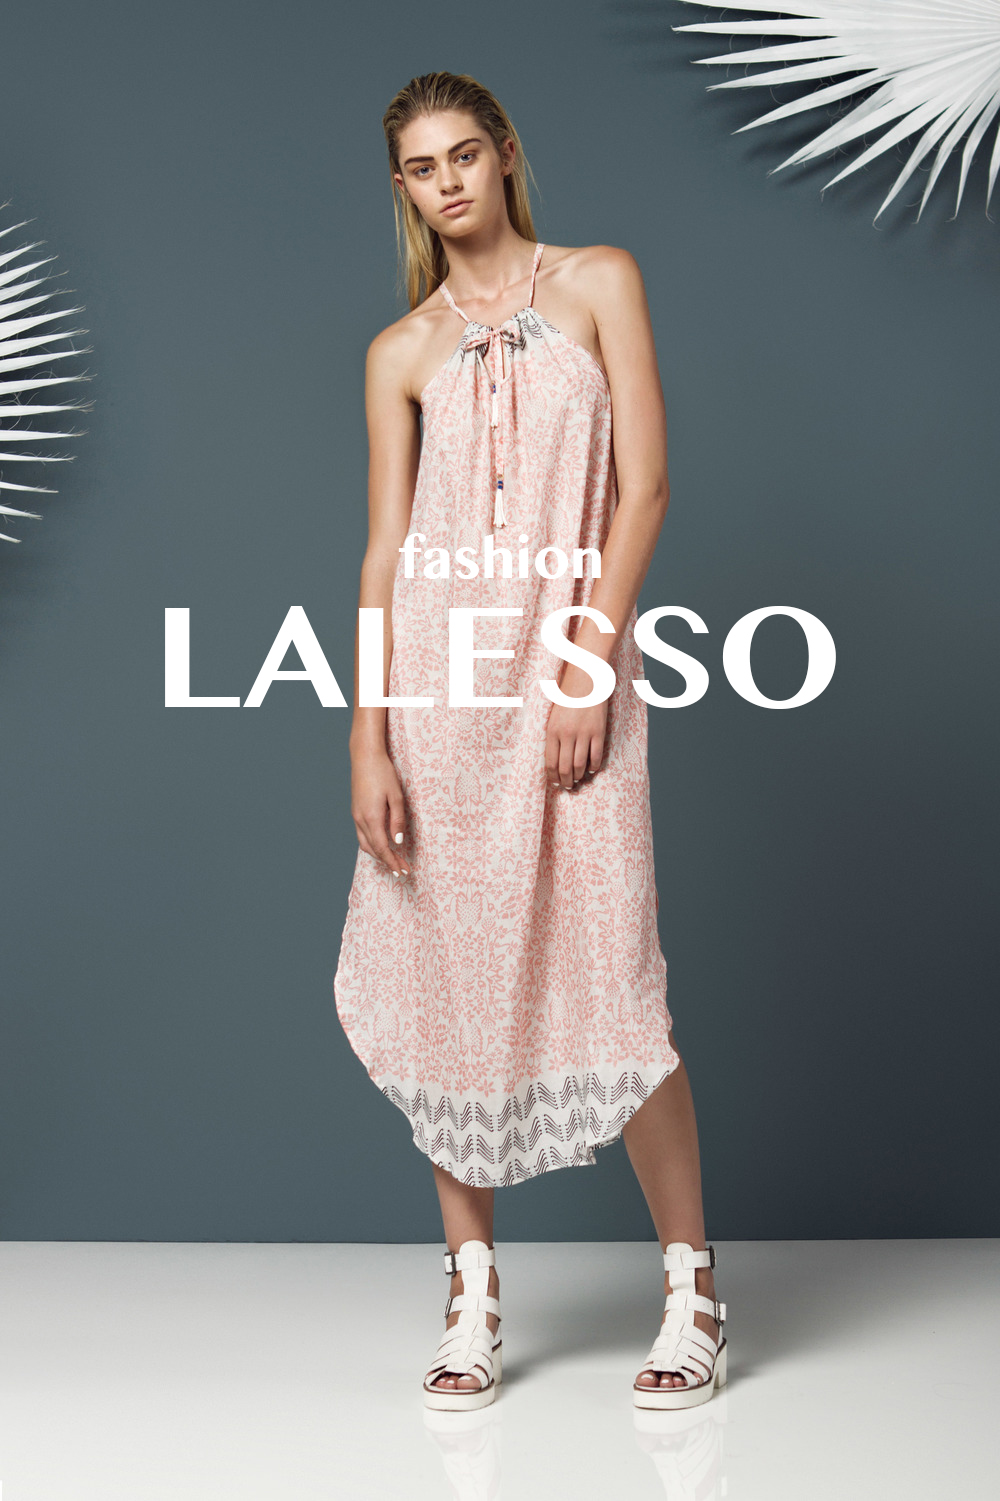 LALESSO'S 2016 RESORT COLLECTION HAS YOUR SUMMER LOOK SORTED OUT! March 8, 2016